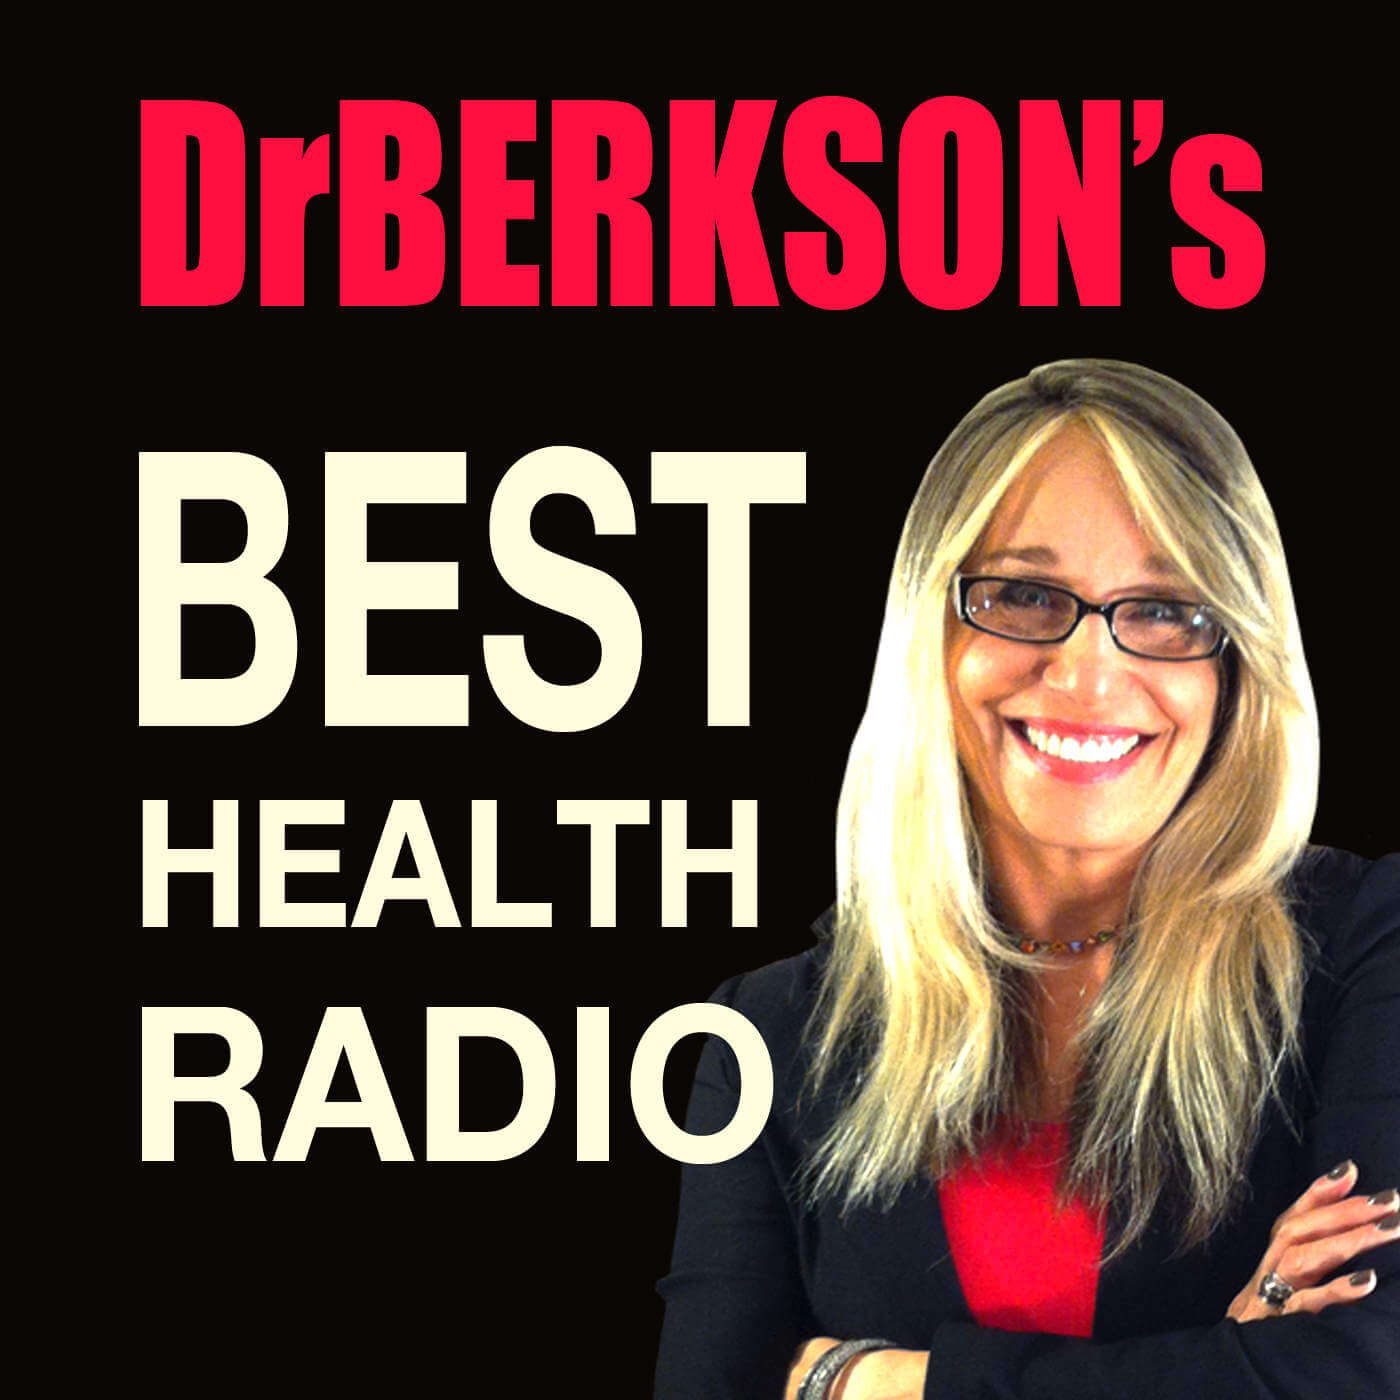 dr.-berksons-best-health-radio/